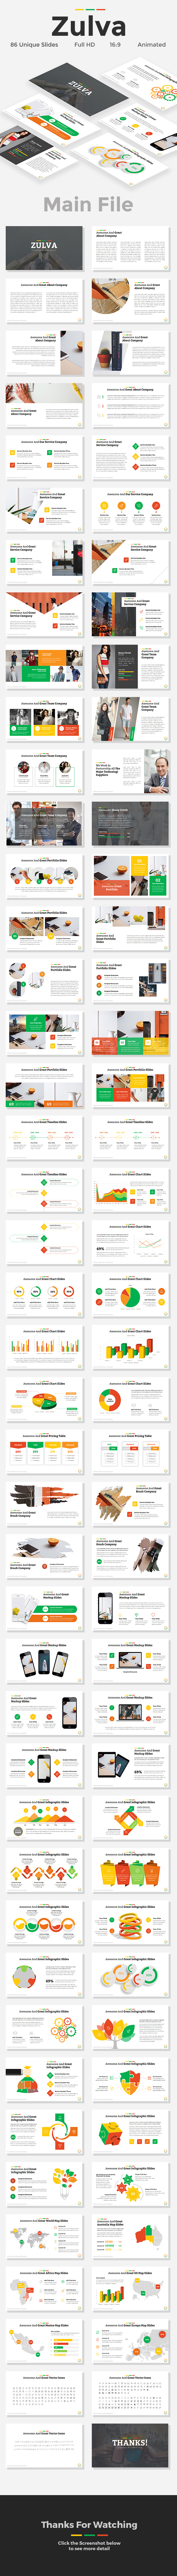 GraphicRiver Zulva Creative Powerpoint Template 21009337